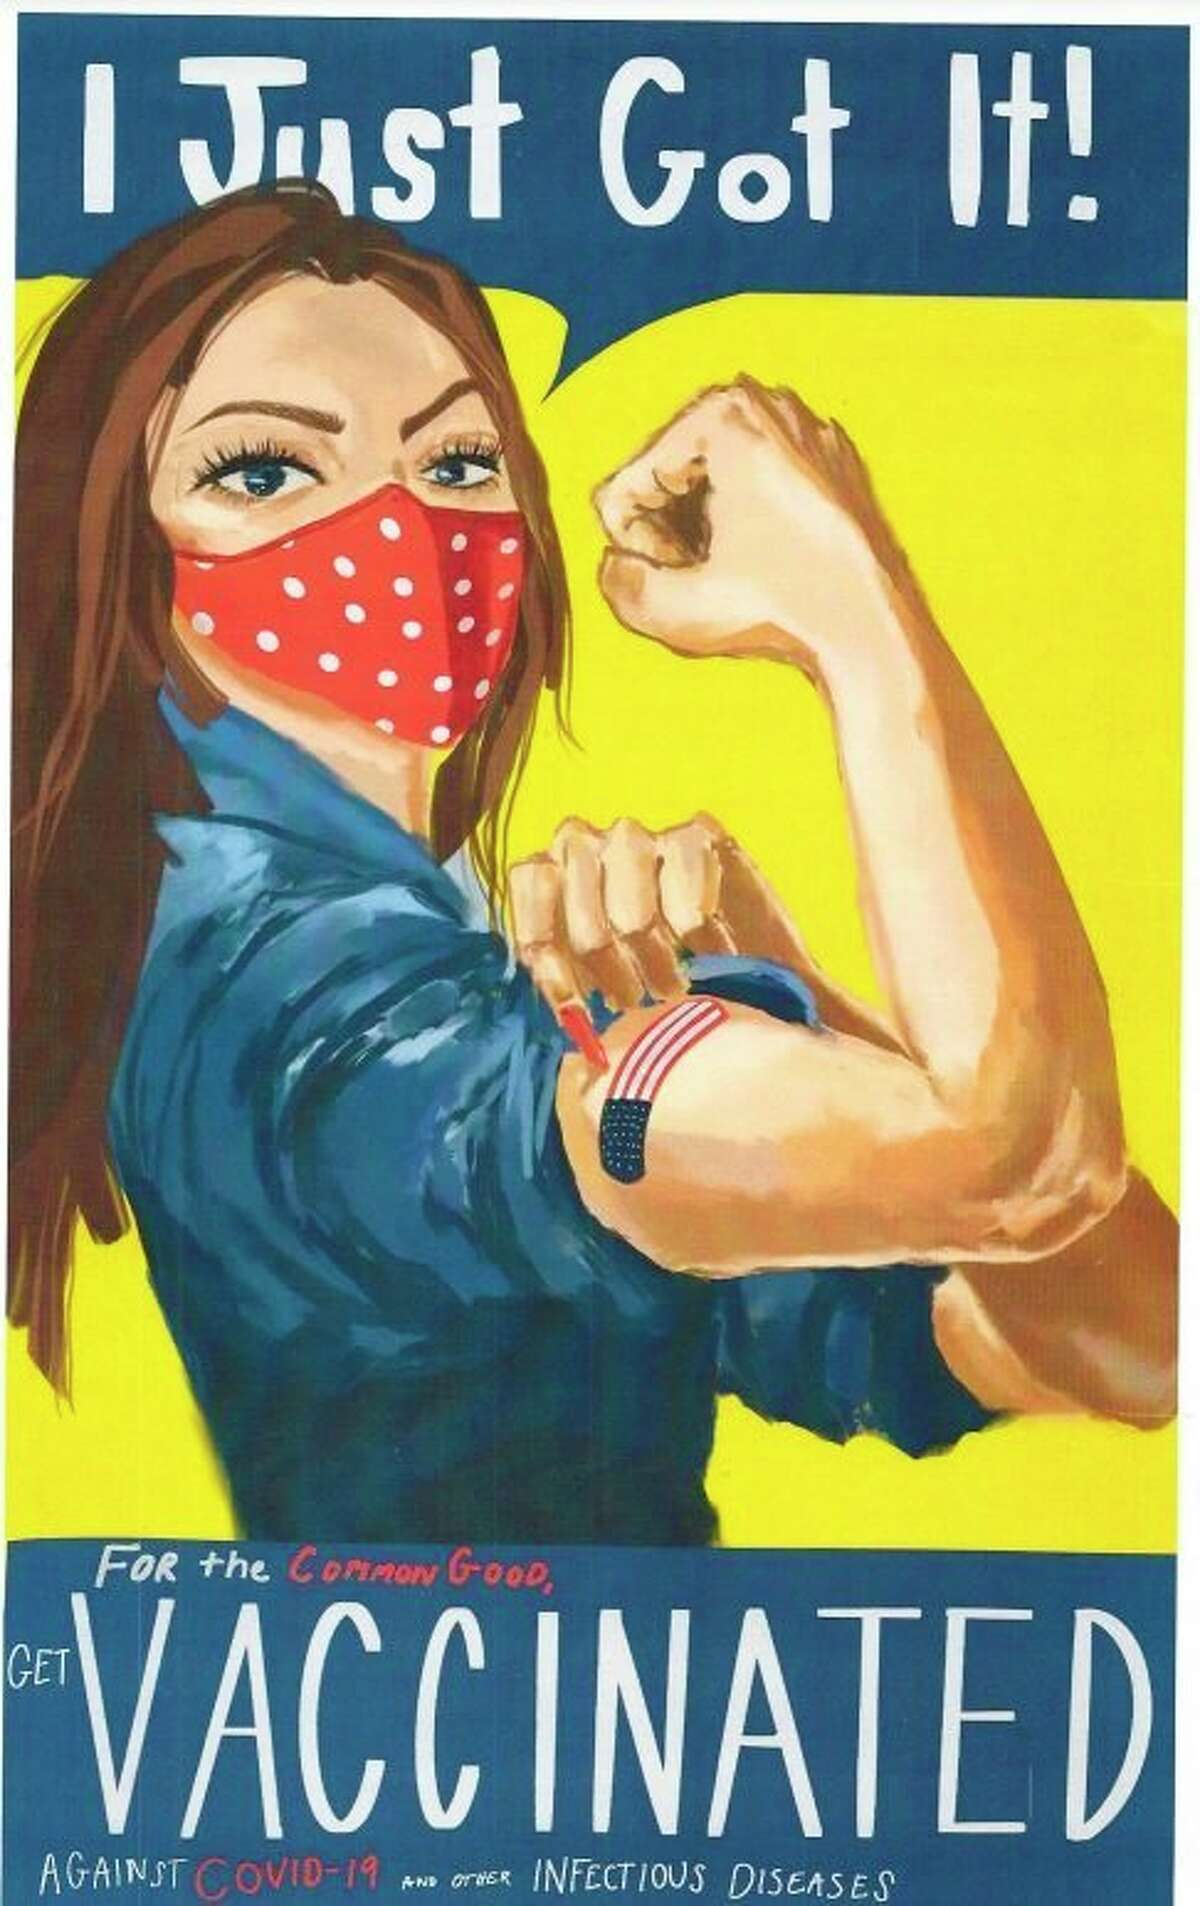 Reeve Katt from Benzie Central High School won a scholarship from the Benzie County Democrats for her poster highlighting the importance of getting vaccinated.(Courtesy Photo)